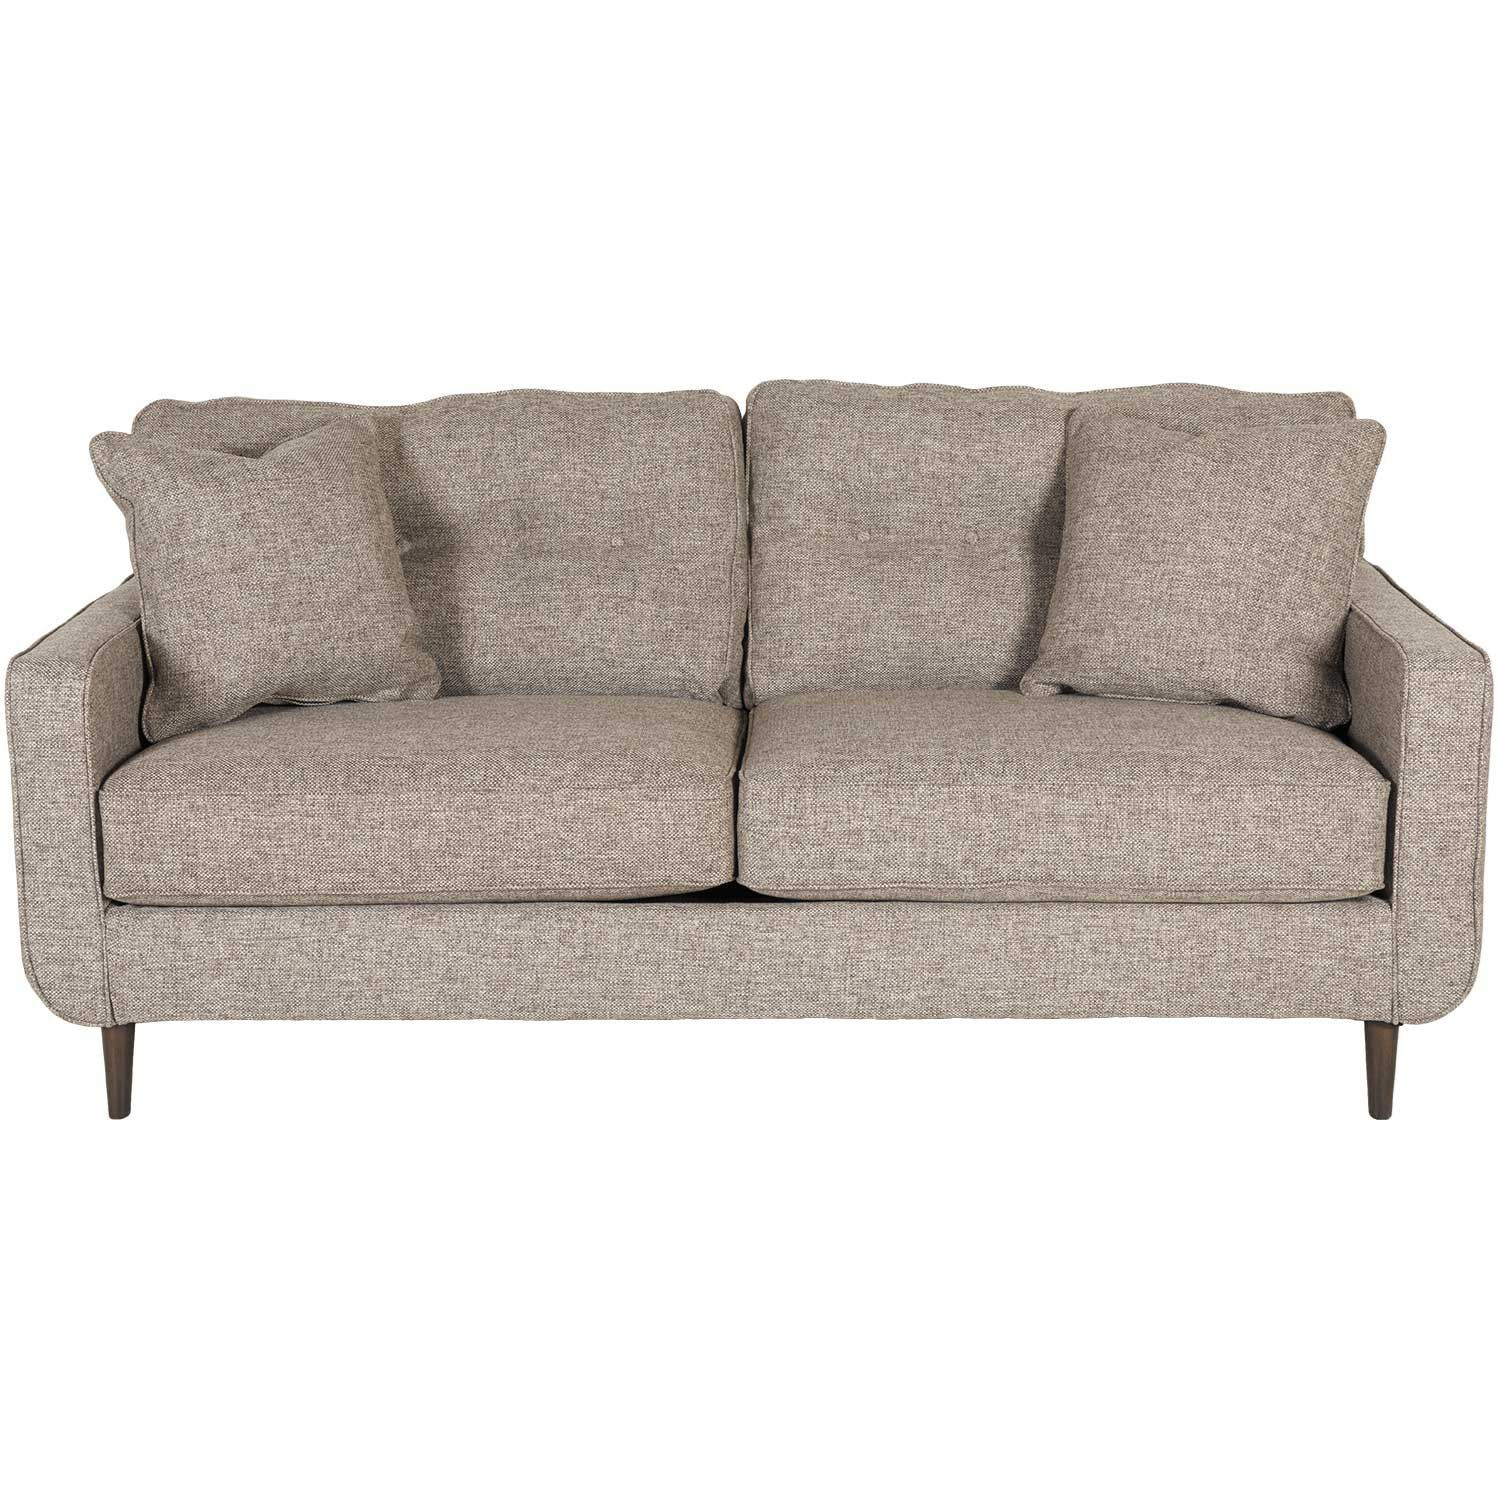 Chento Jute Sofa M 628S | Ashley Furniture | Afw Inside Abigail Ii Sofa Chairs (View 8 of 25)